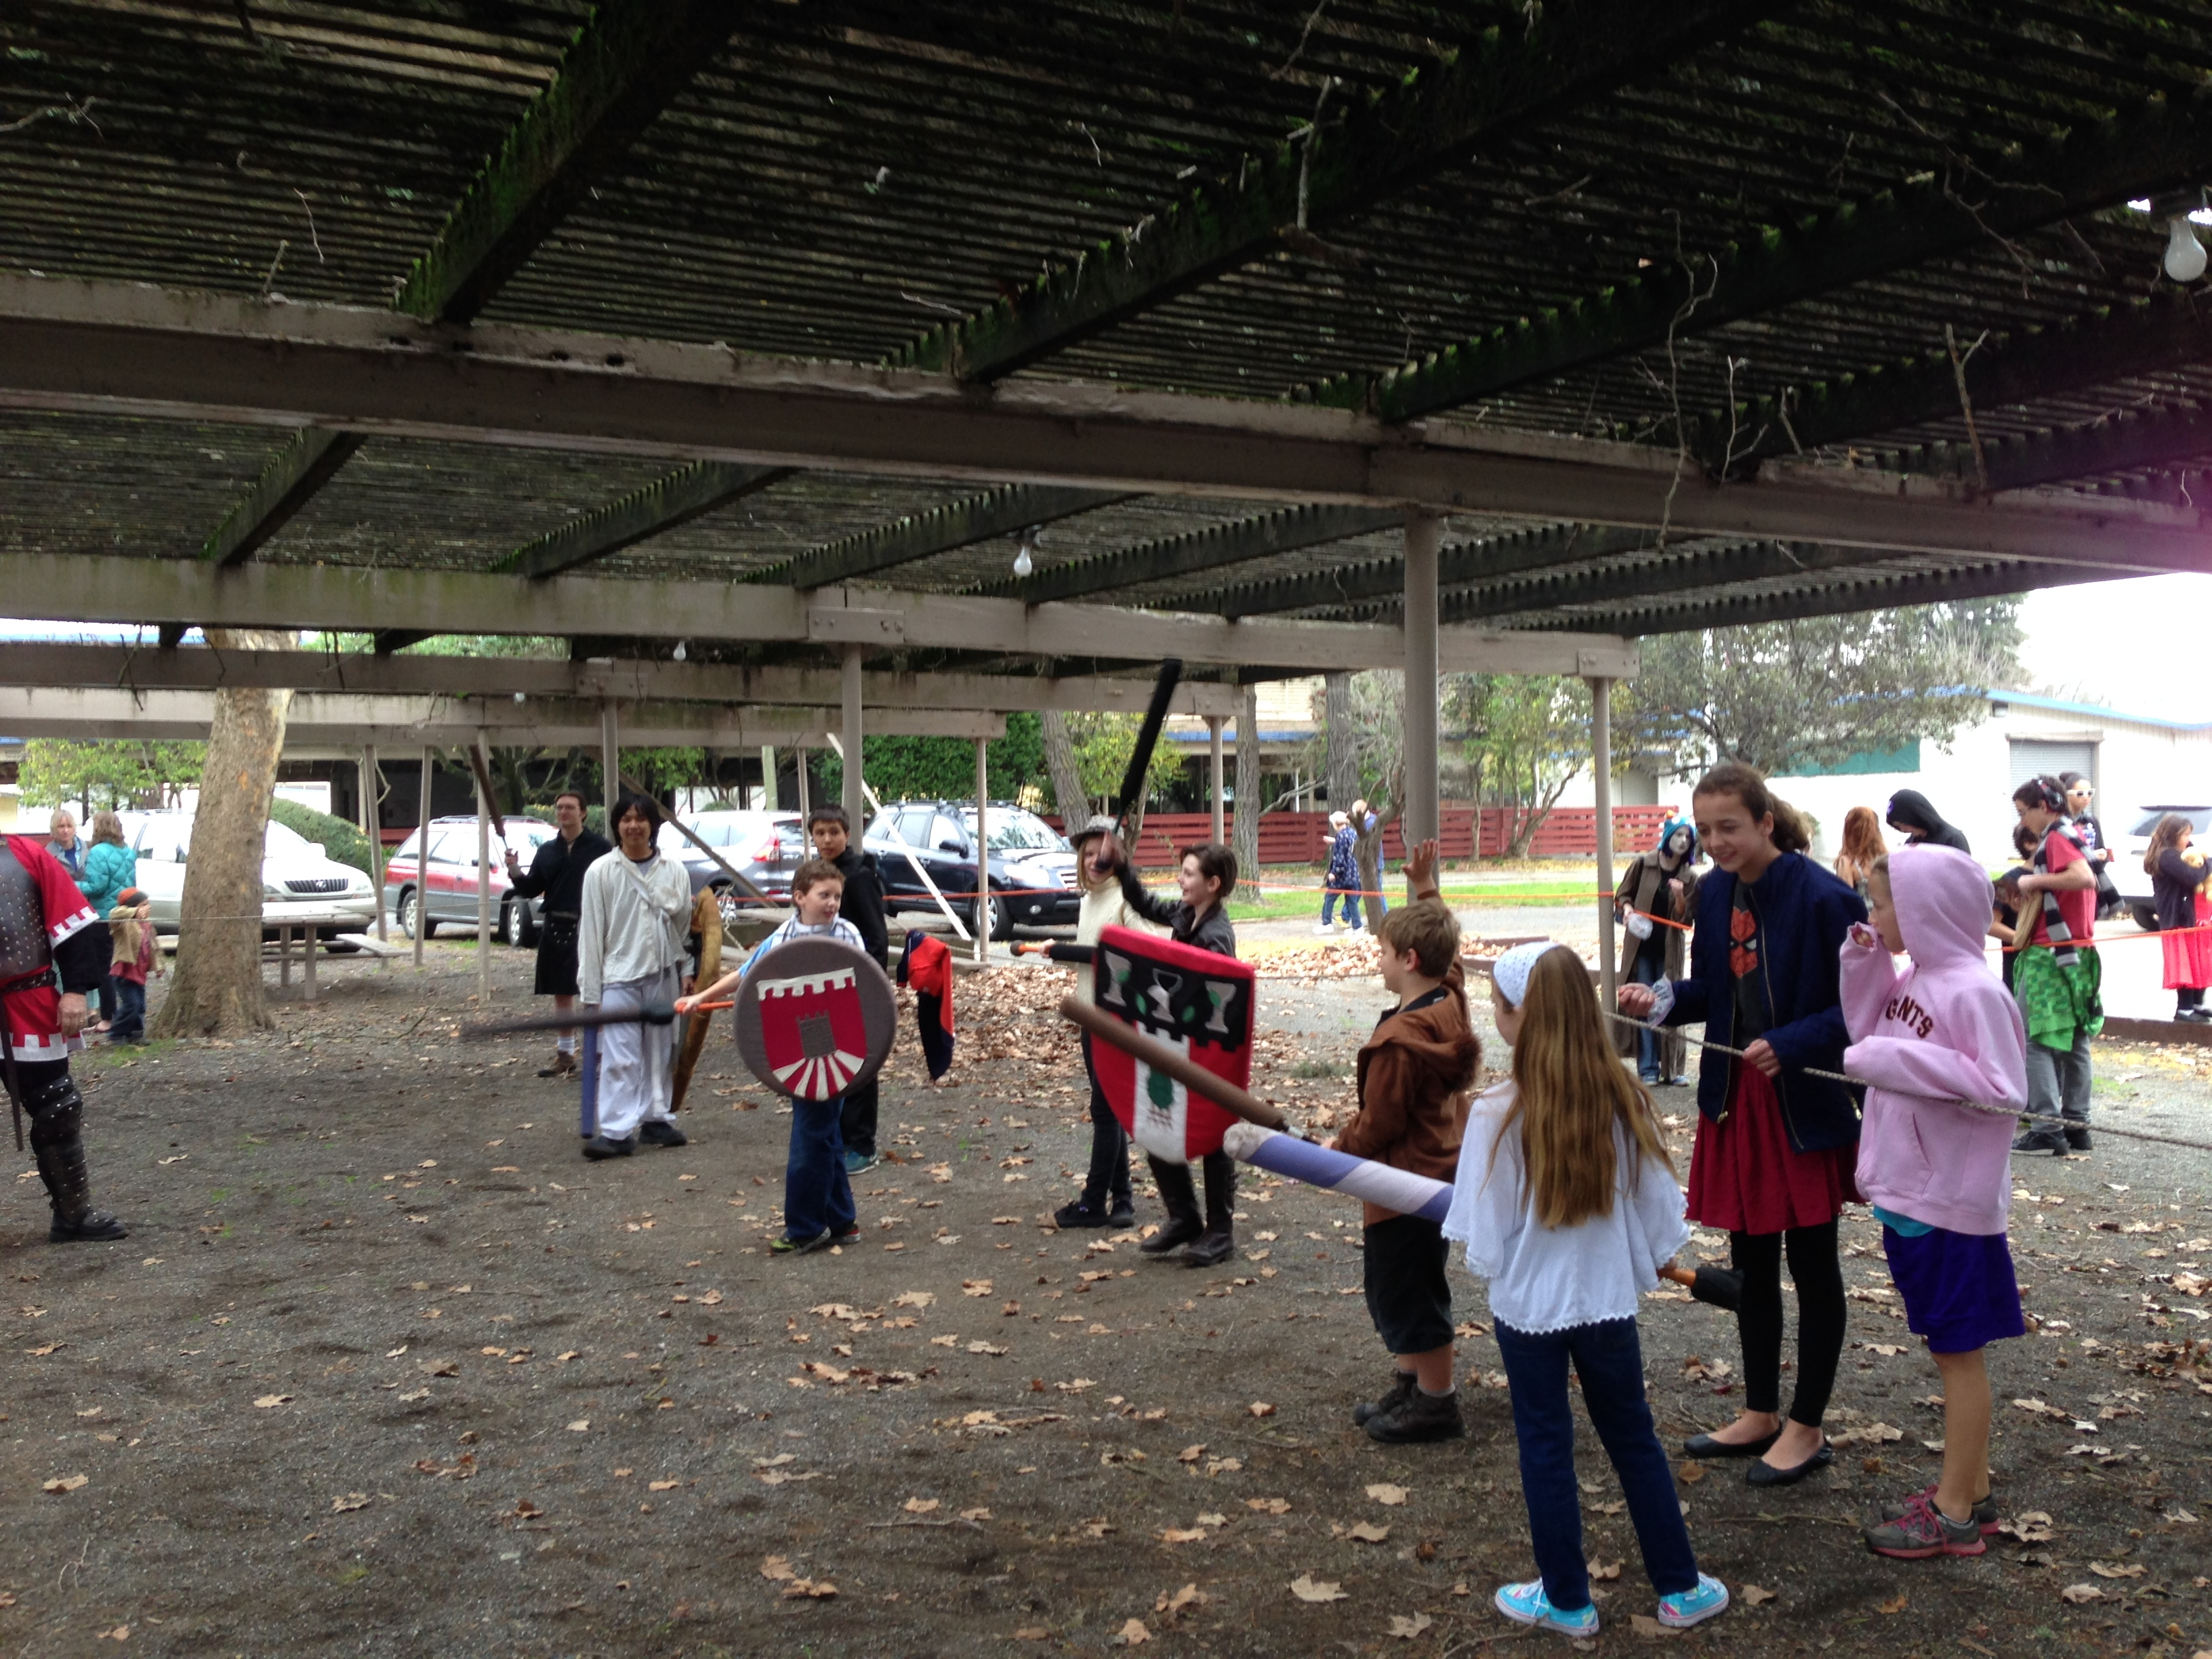 Larping kids by DavidD